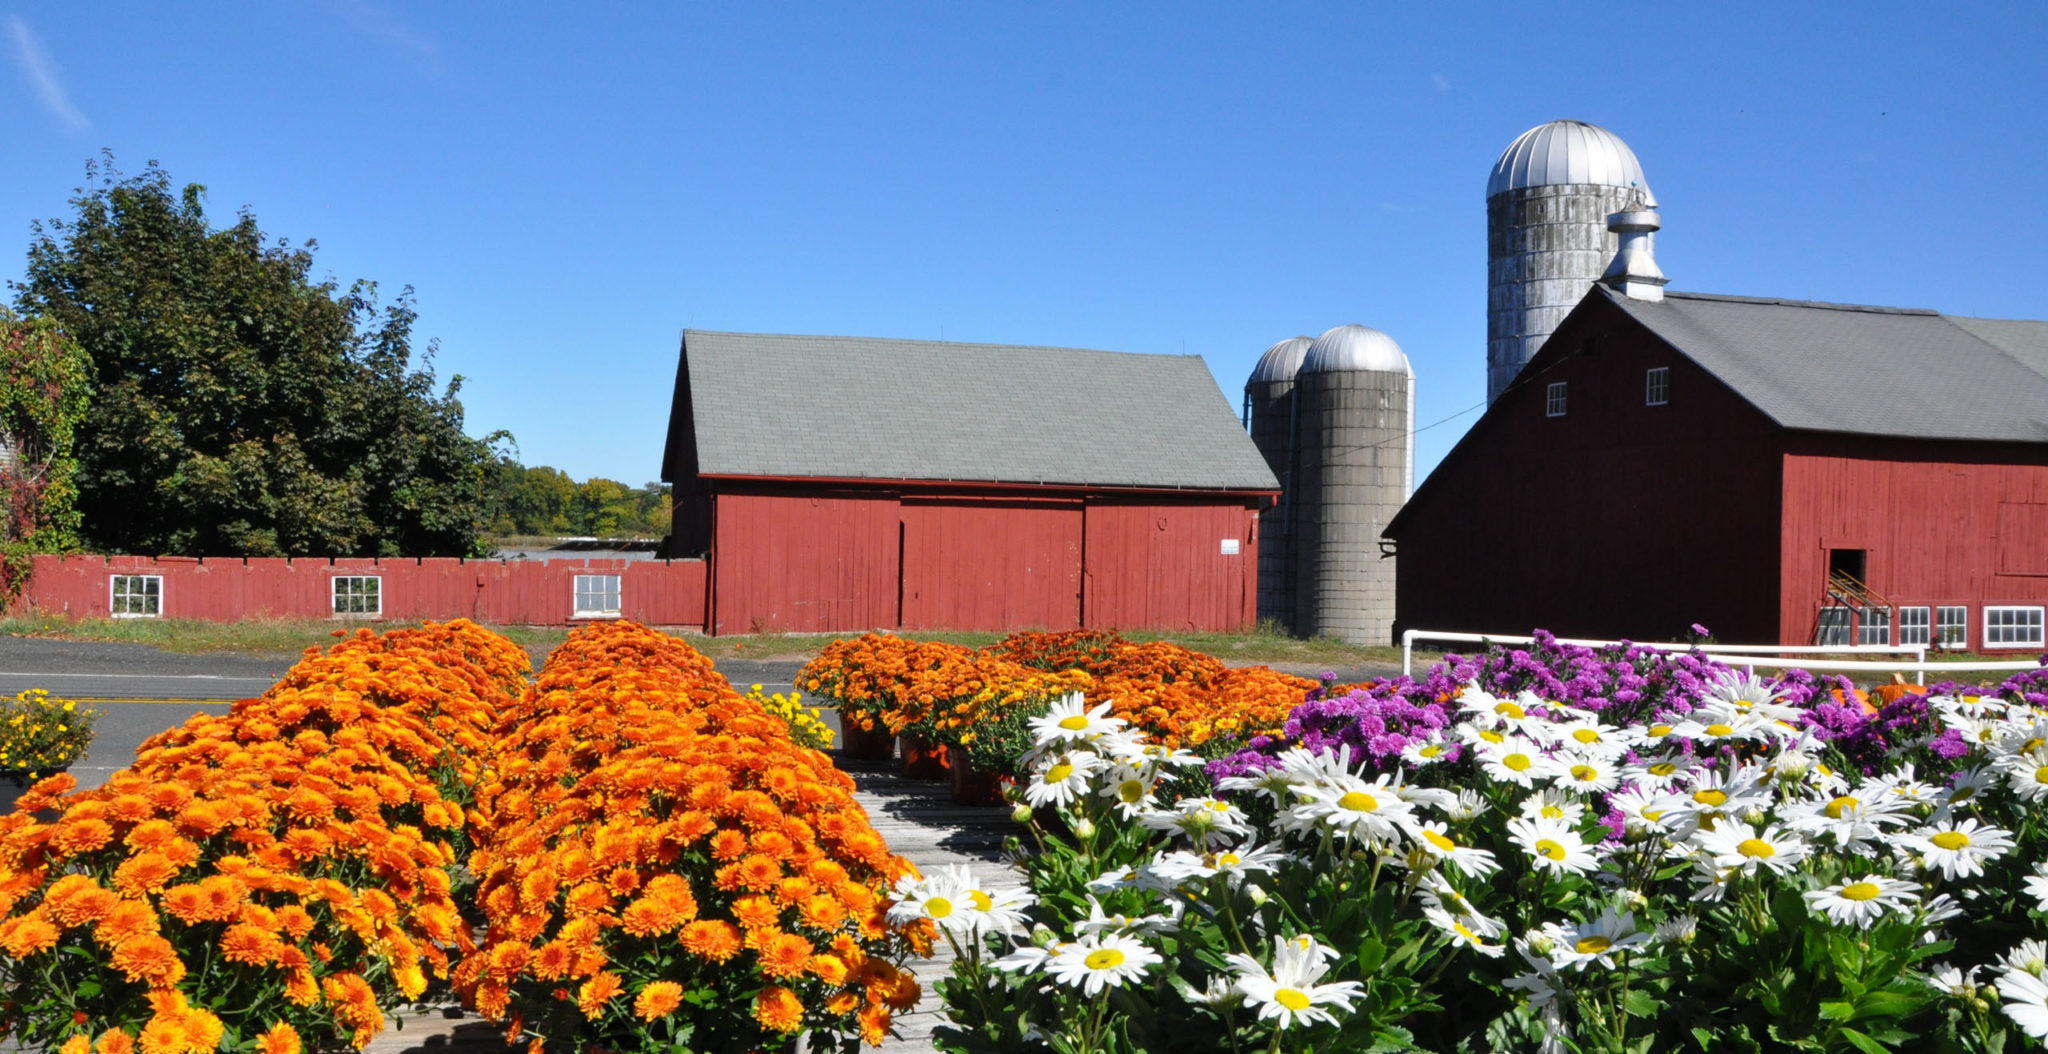 Town of Simsbury, Tulmeadow Farm - Landscape Photography